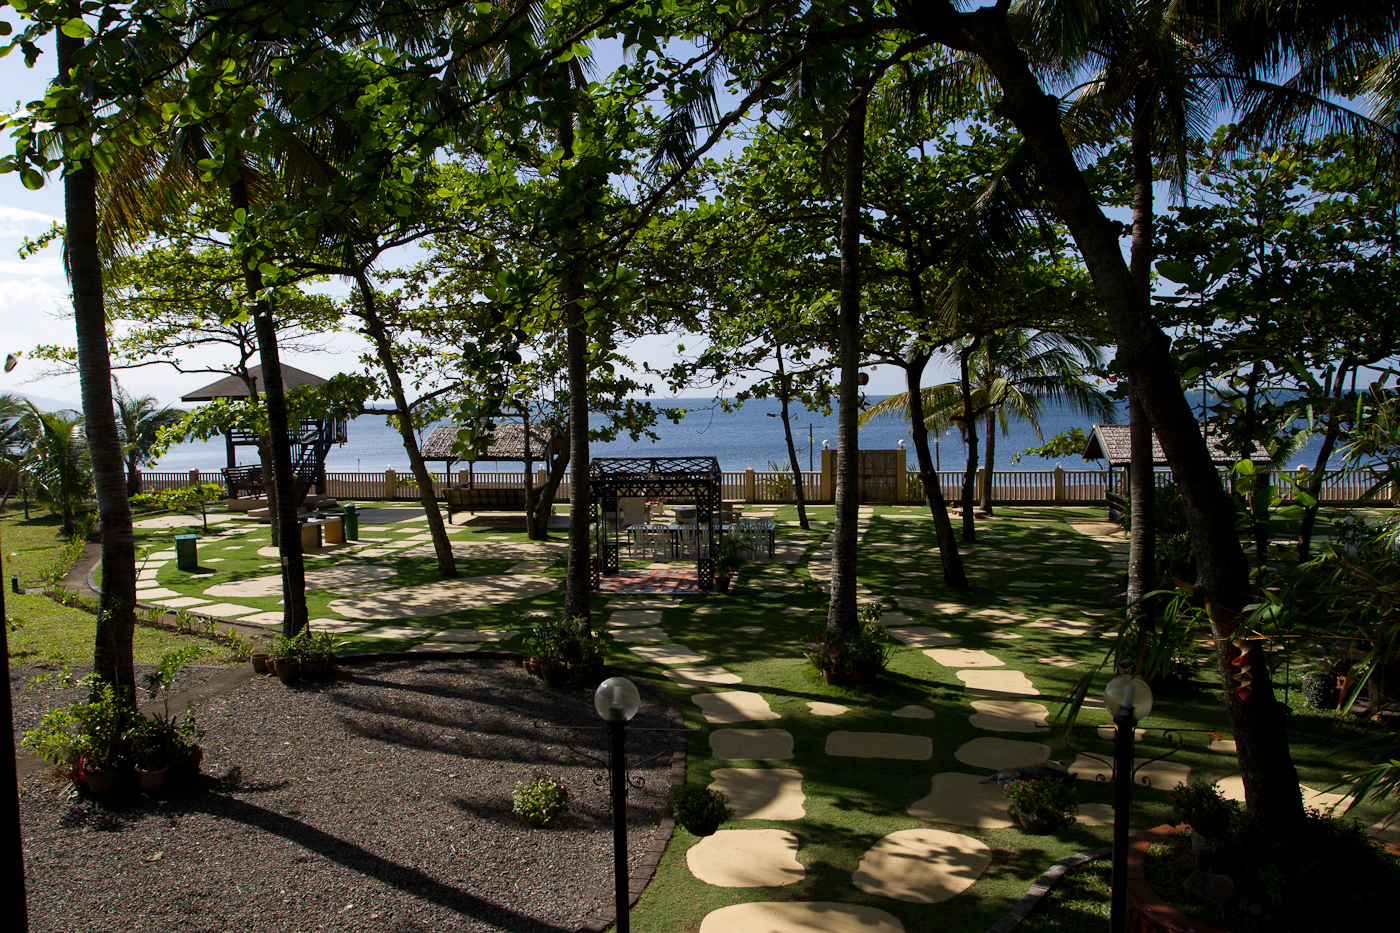 The grounds of the MiraMar Private Resort in Lemery, Batangas on the main island of Luzon. The wedding pre and after party took place here.